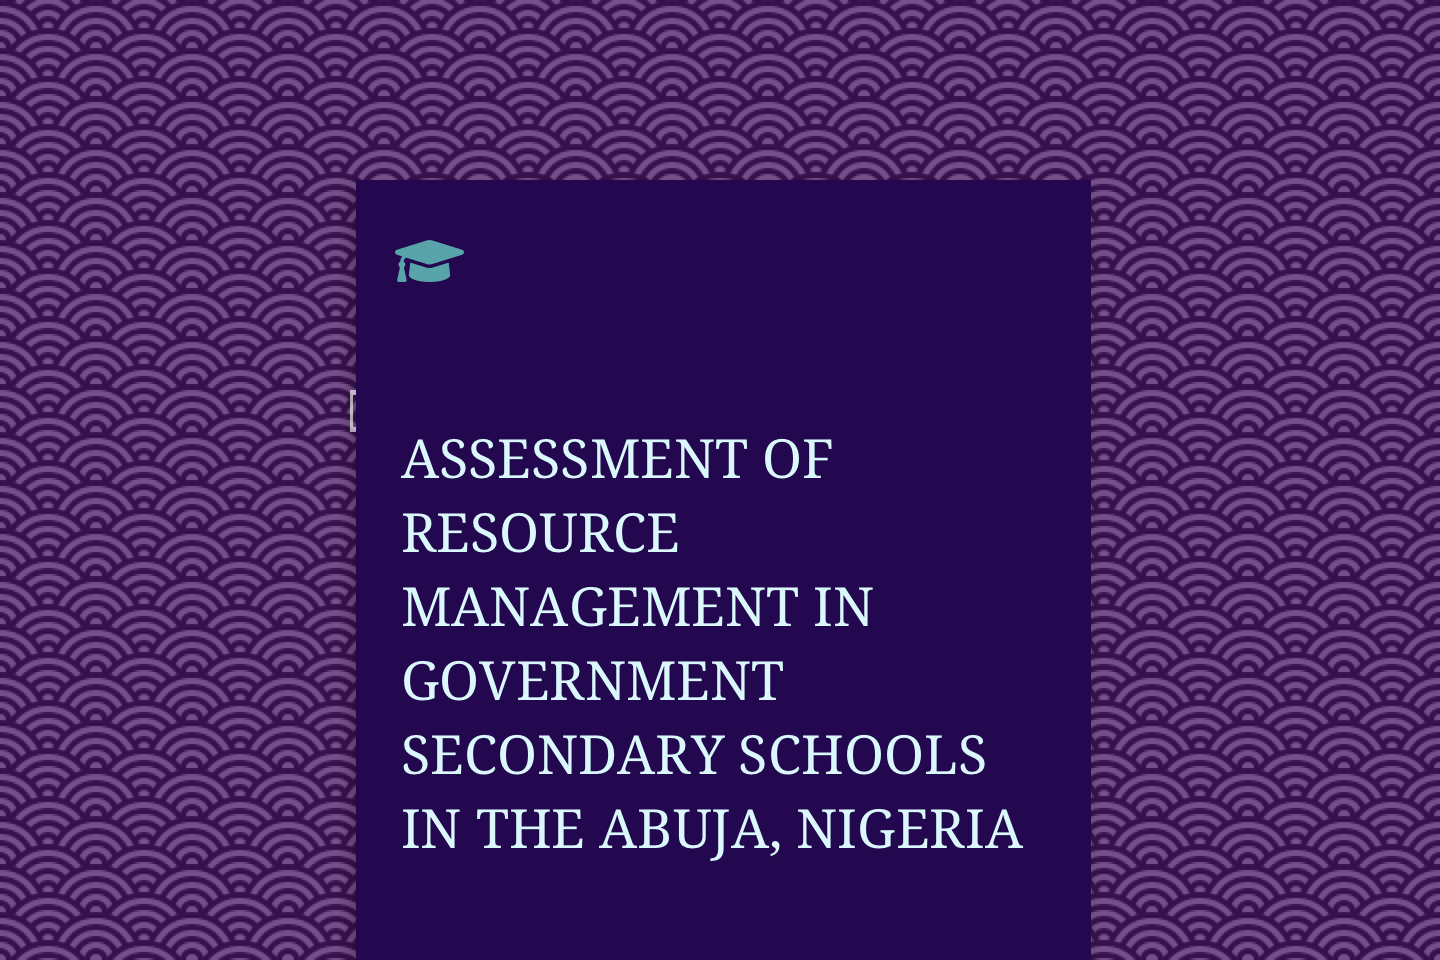 ASSESSMENT OF RESOURCE MANAGEMENT IN GOVERNMENT SECONDARY SCHOOLS IN THE FEDERAL CAPITAL TERRITORY (FCT) ABUJA, NIGERIA